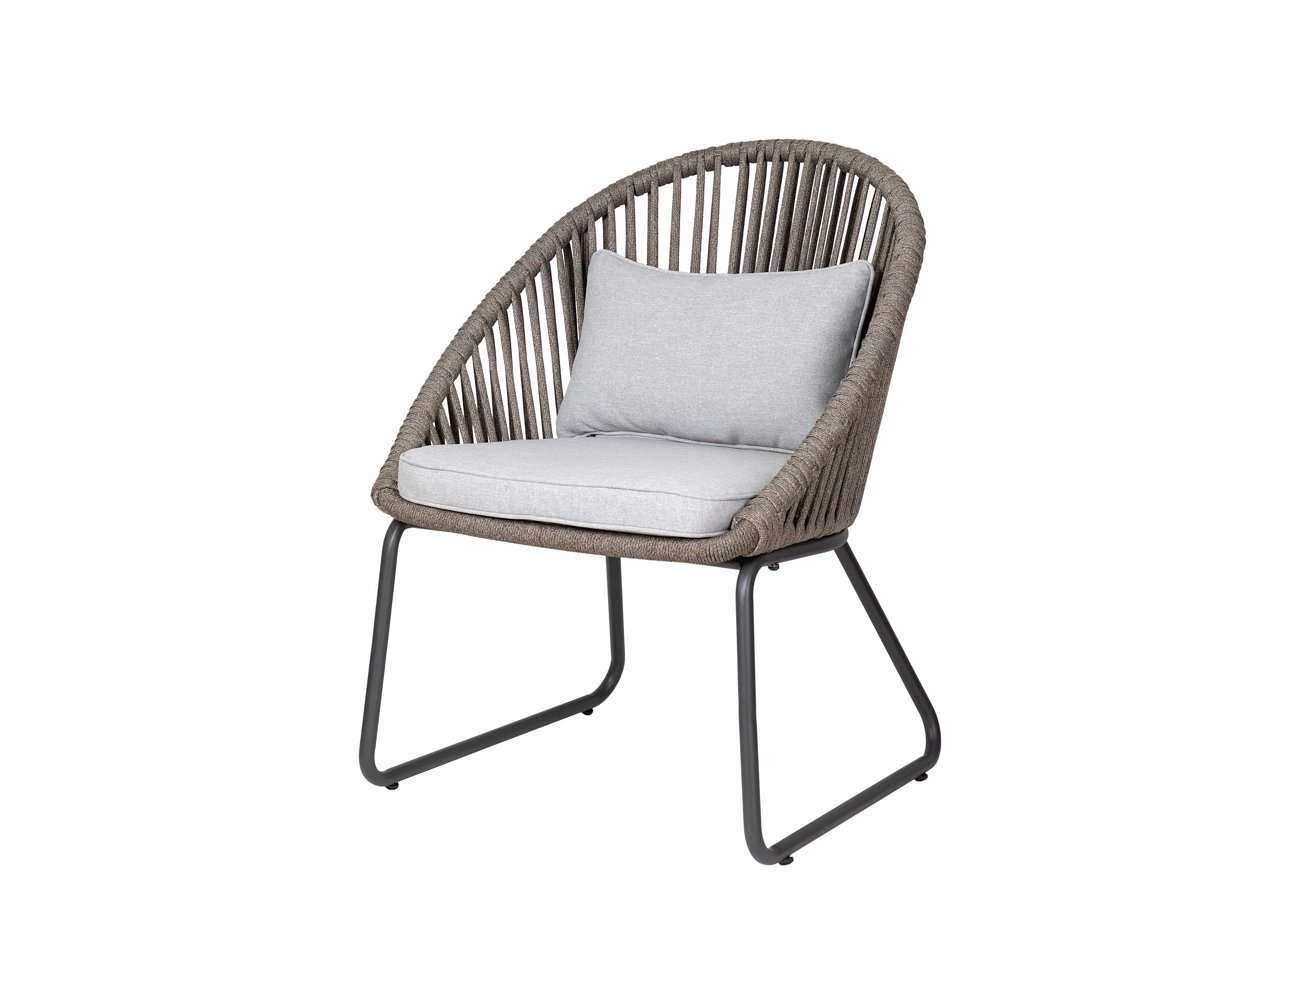 Rifleman Aluminium and Rope Outdoor Dining Chair